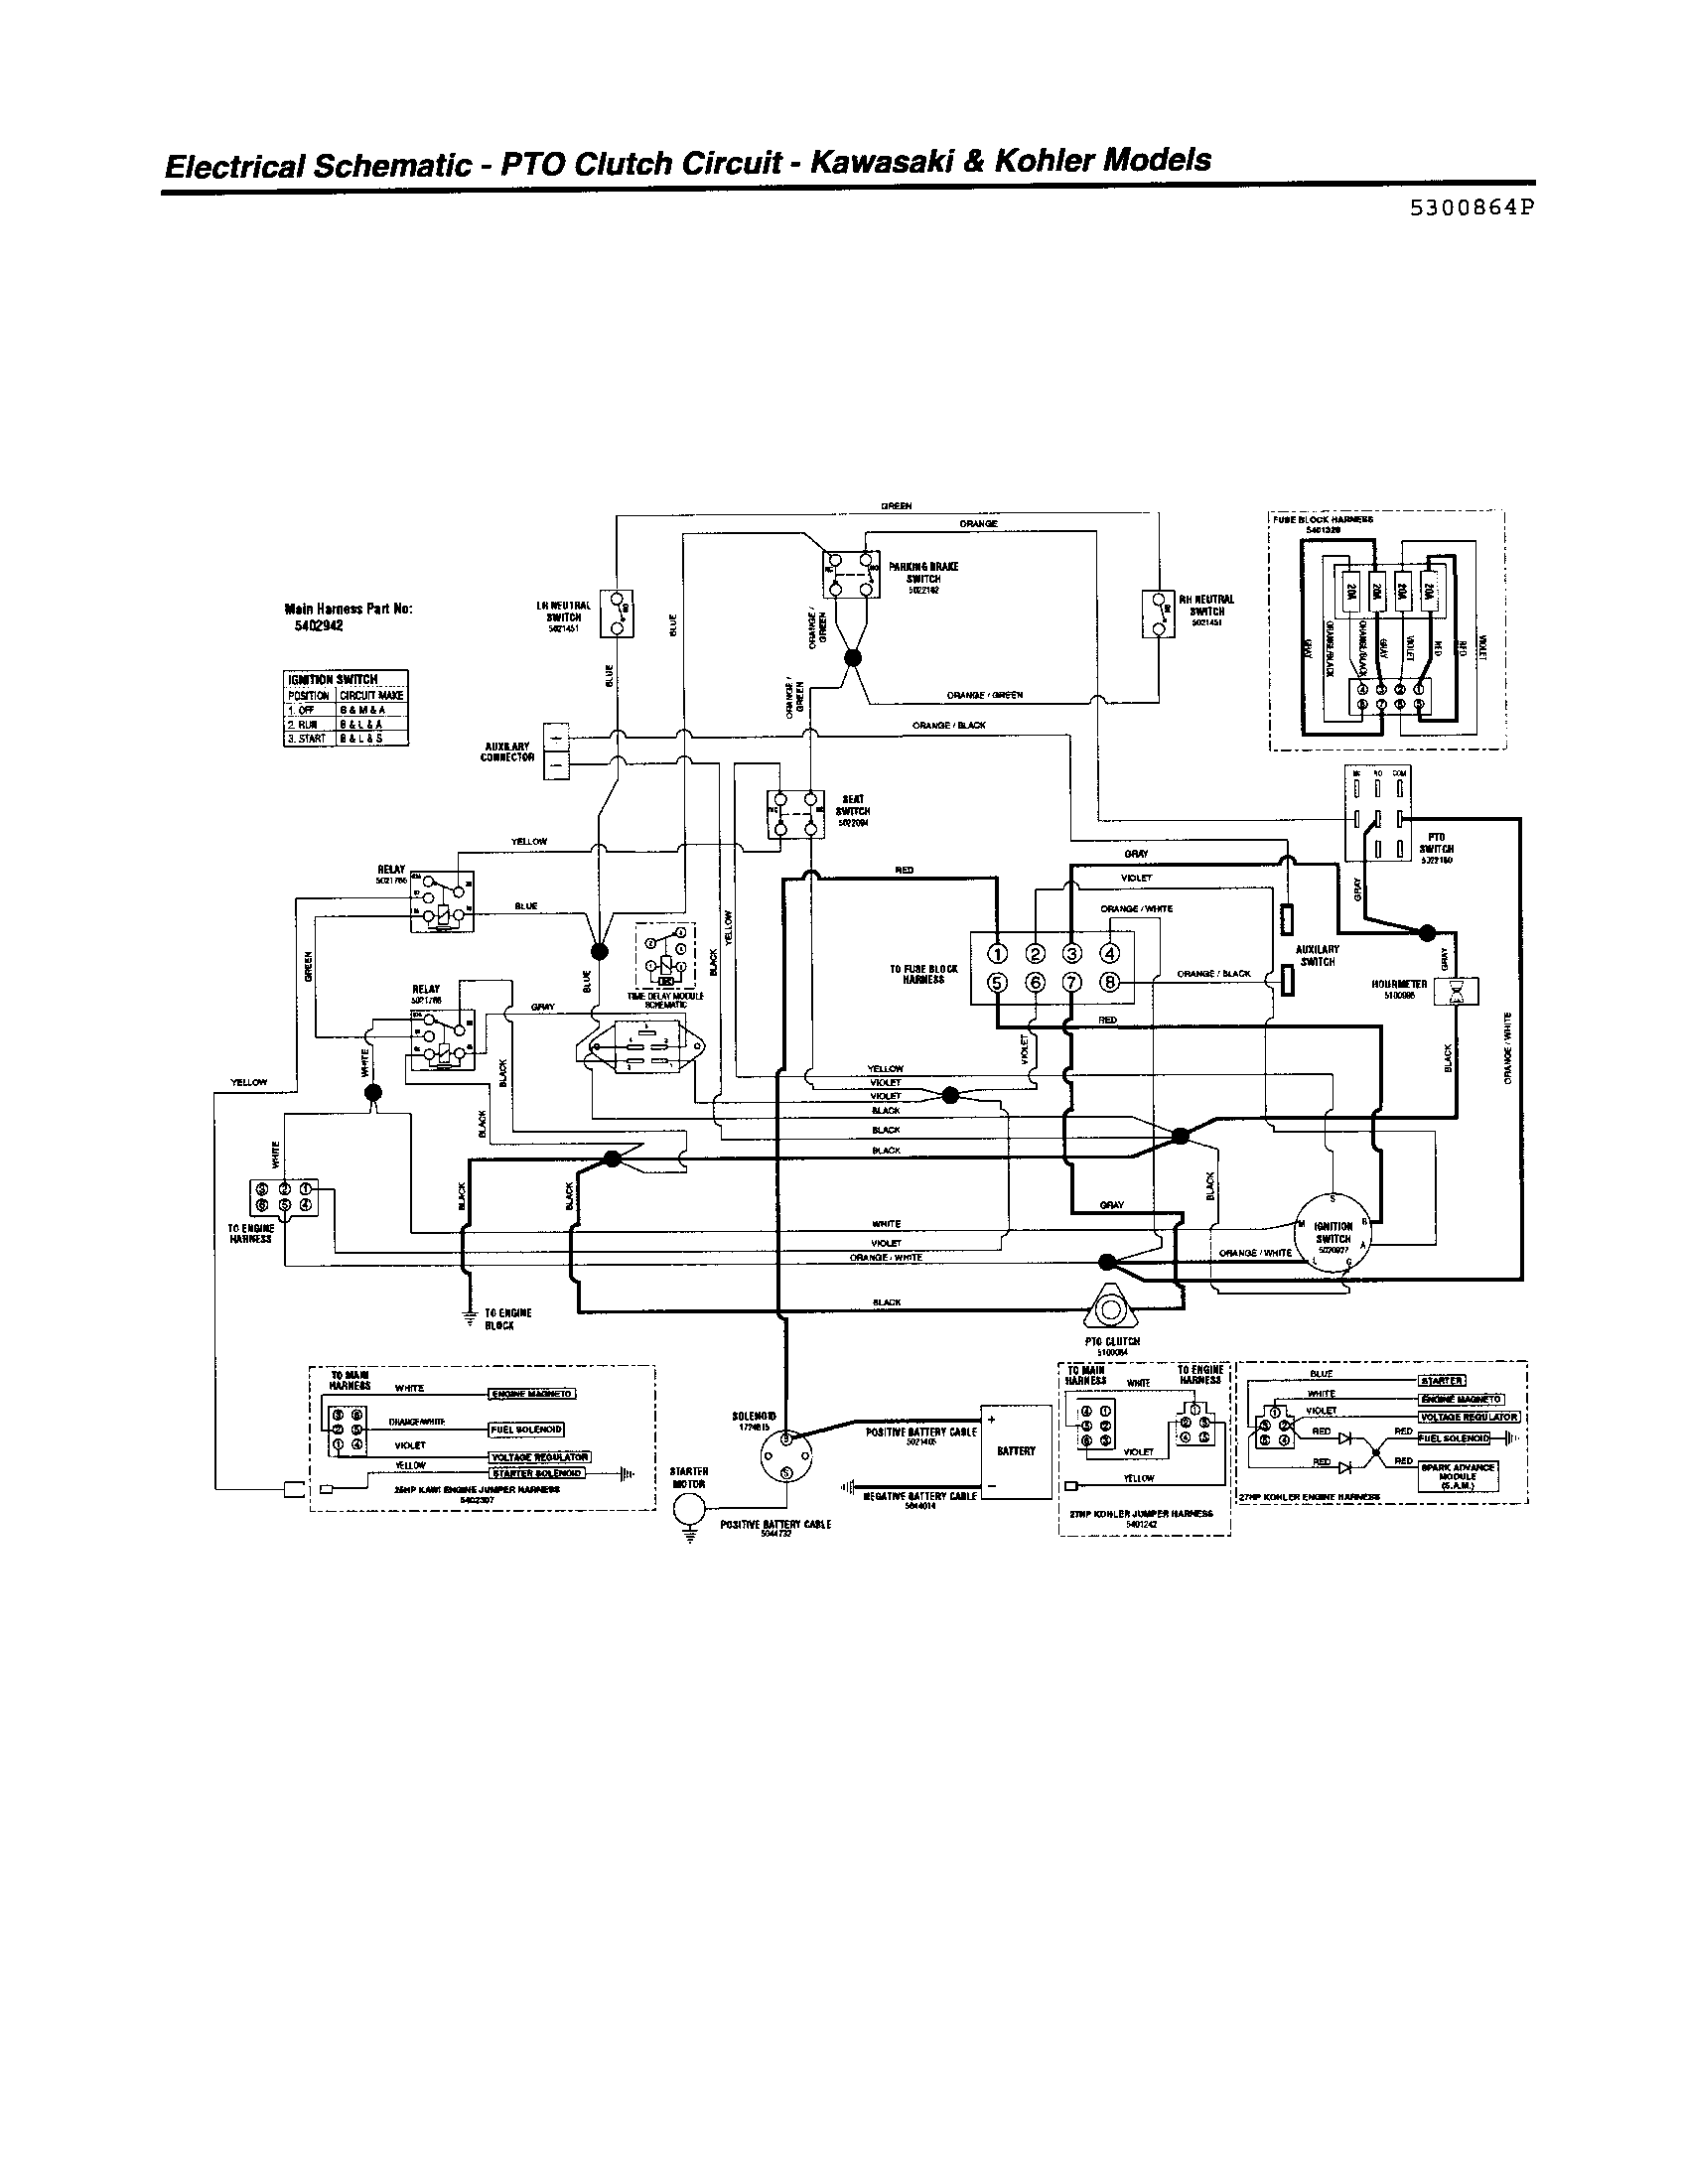 edd203c96939fe65be99faf05b27f9f2 country clipper jazee mowers wiring diagrams country clipper Thermostat Wiring Diagram at alyssarenee.co